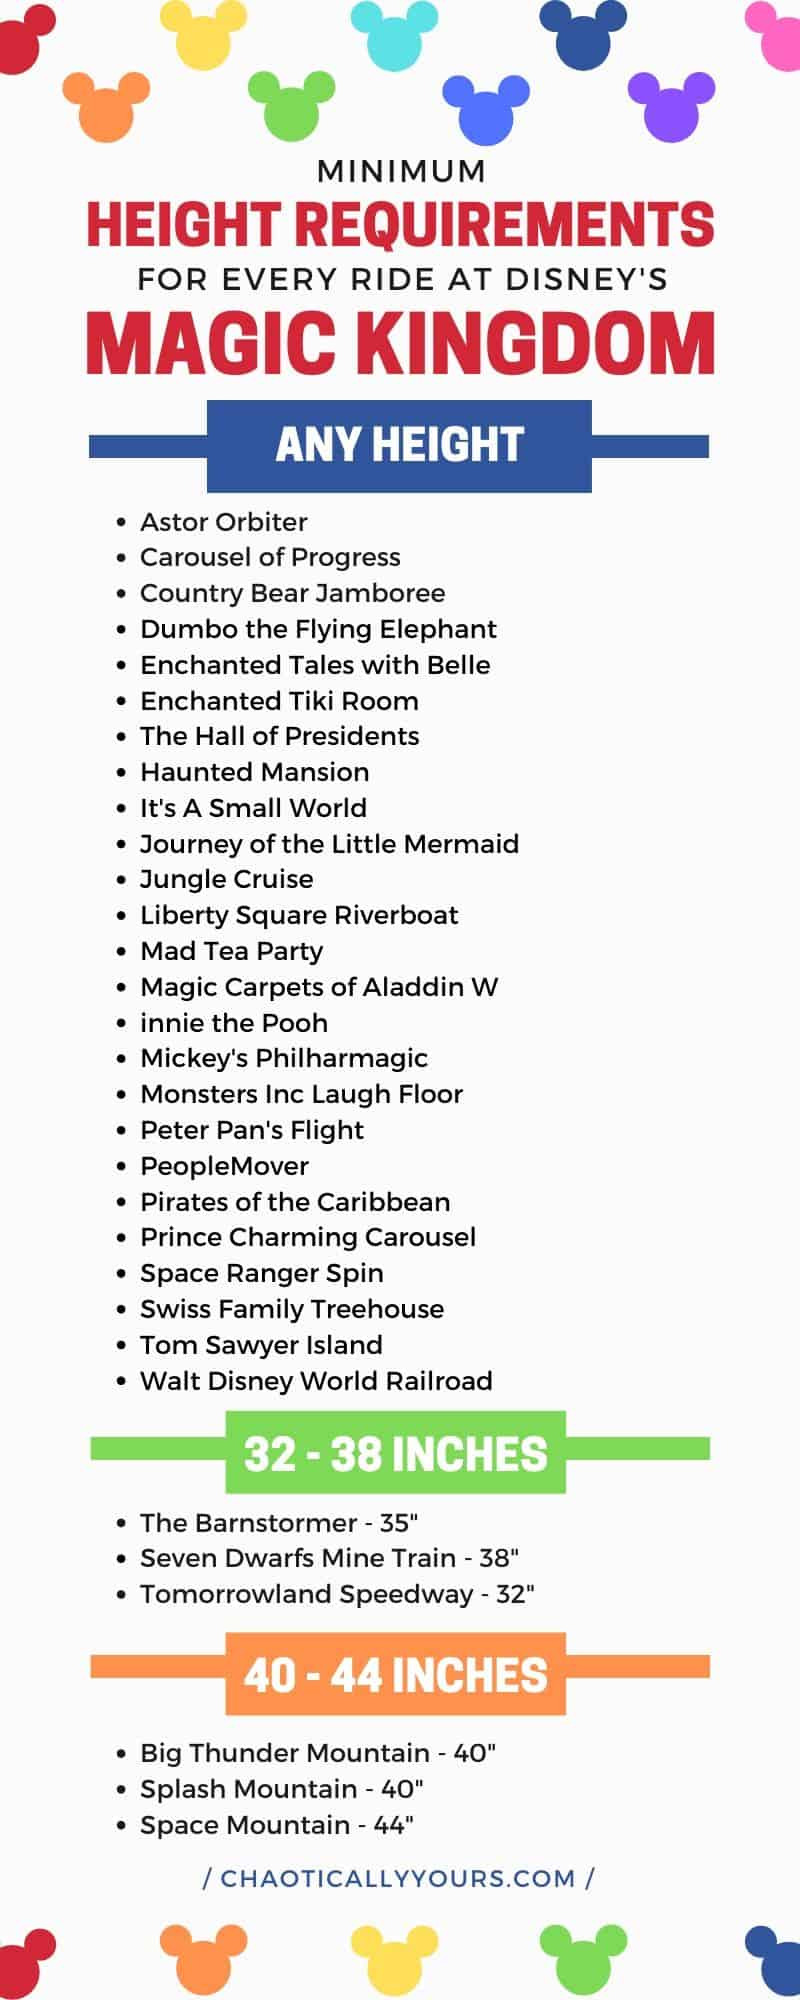 List of Disney Height Requirements for Rides in the Magic Kingdom